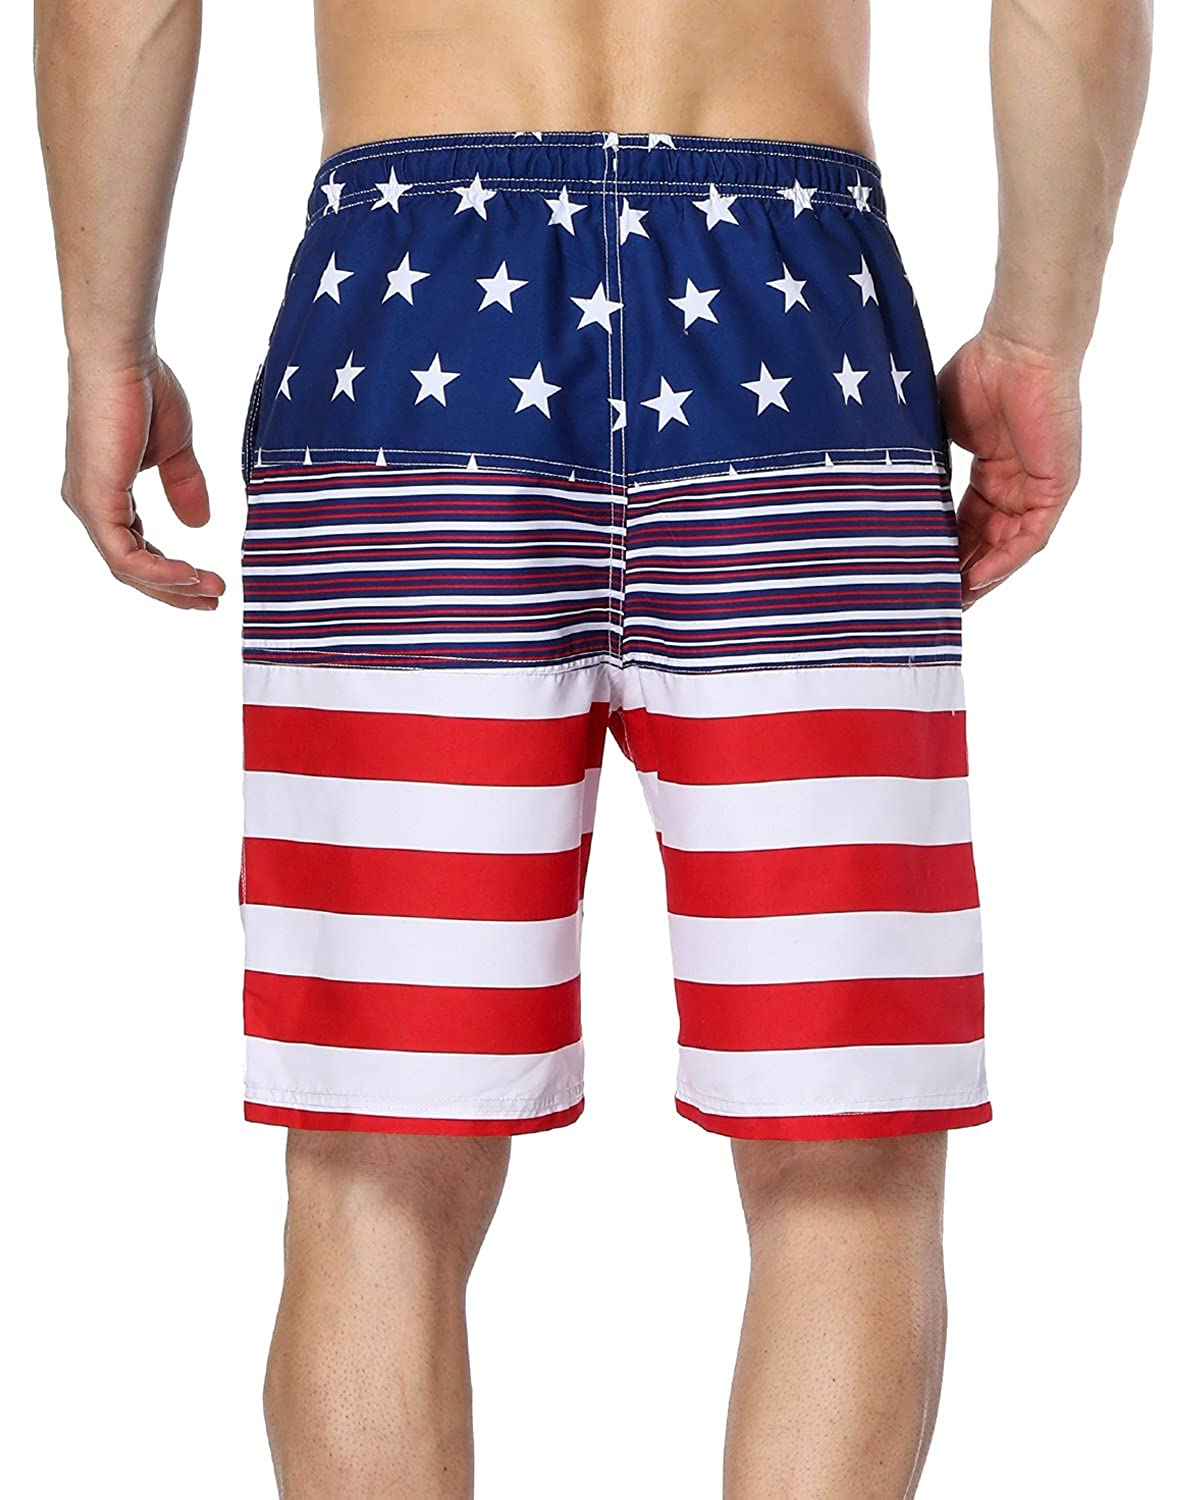 bc52ca41b1 Amazon.com: Sociala Men's American Flag Swim Trunks US Flag Bathing Suit  Board Swim Shorts: Clothing